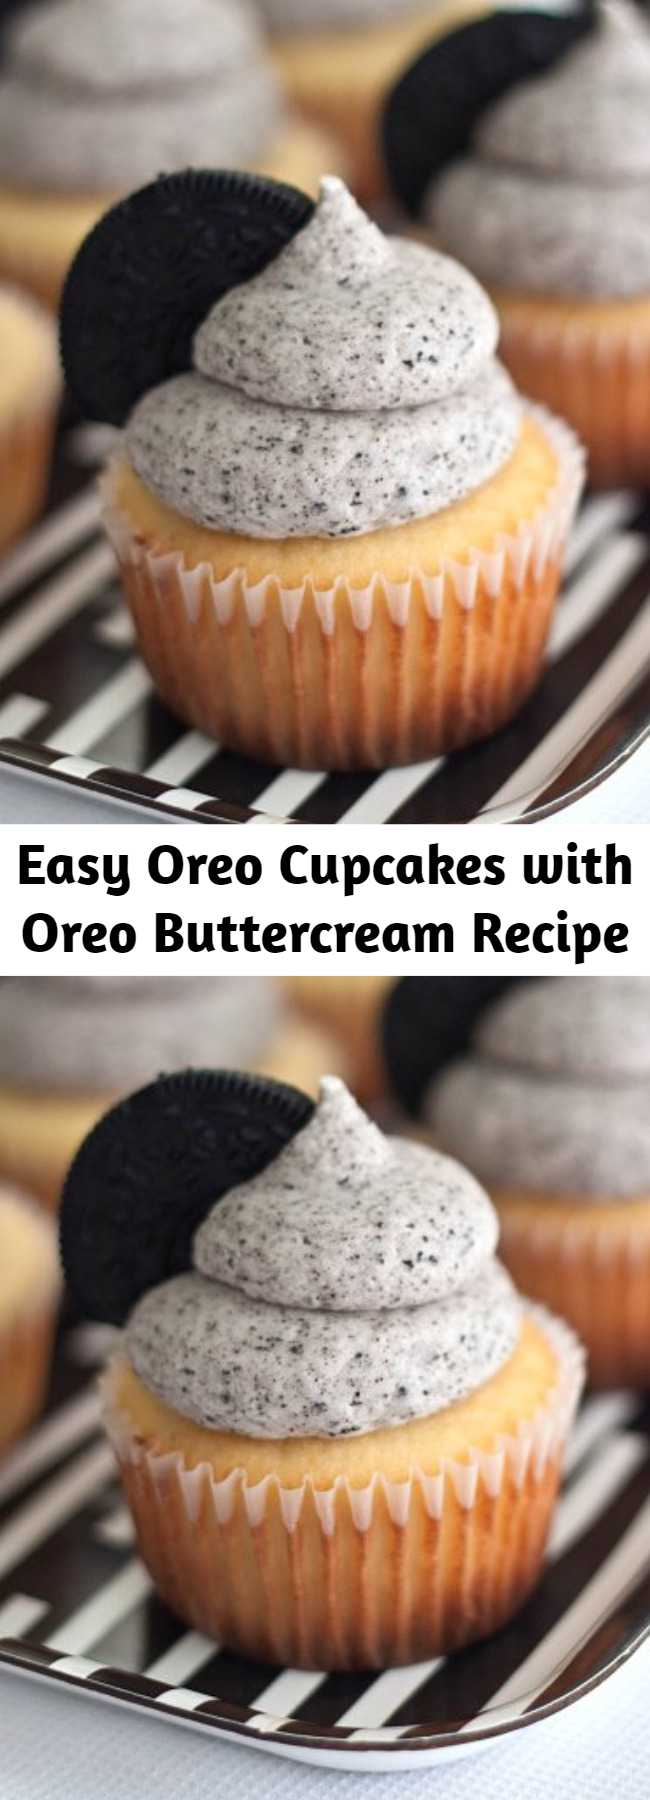 Easy Oreo Cupcakes with Oreo Buttercream Recipe - A simple vanilla cupcake with an Oreo surprise on the bottom, topped with a rich Oreo buttercream frosting. It's pretty much perfection. If you're looking for something fun to bake this weekend, look no further. I'm sure they'll quickly become your favorite cupcake too!